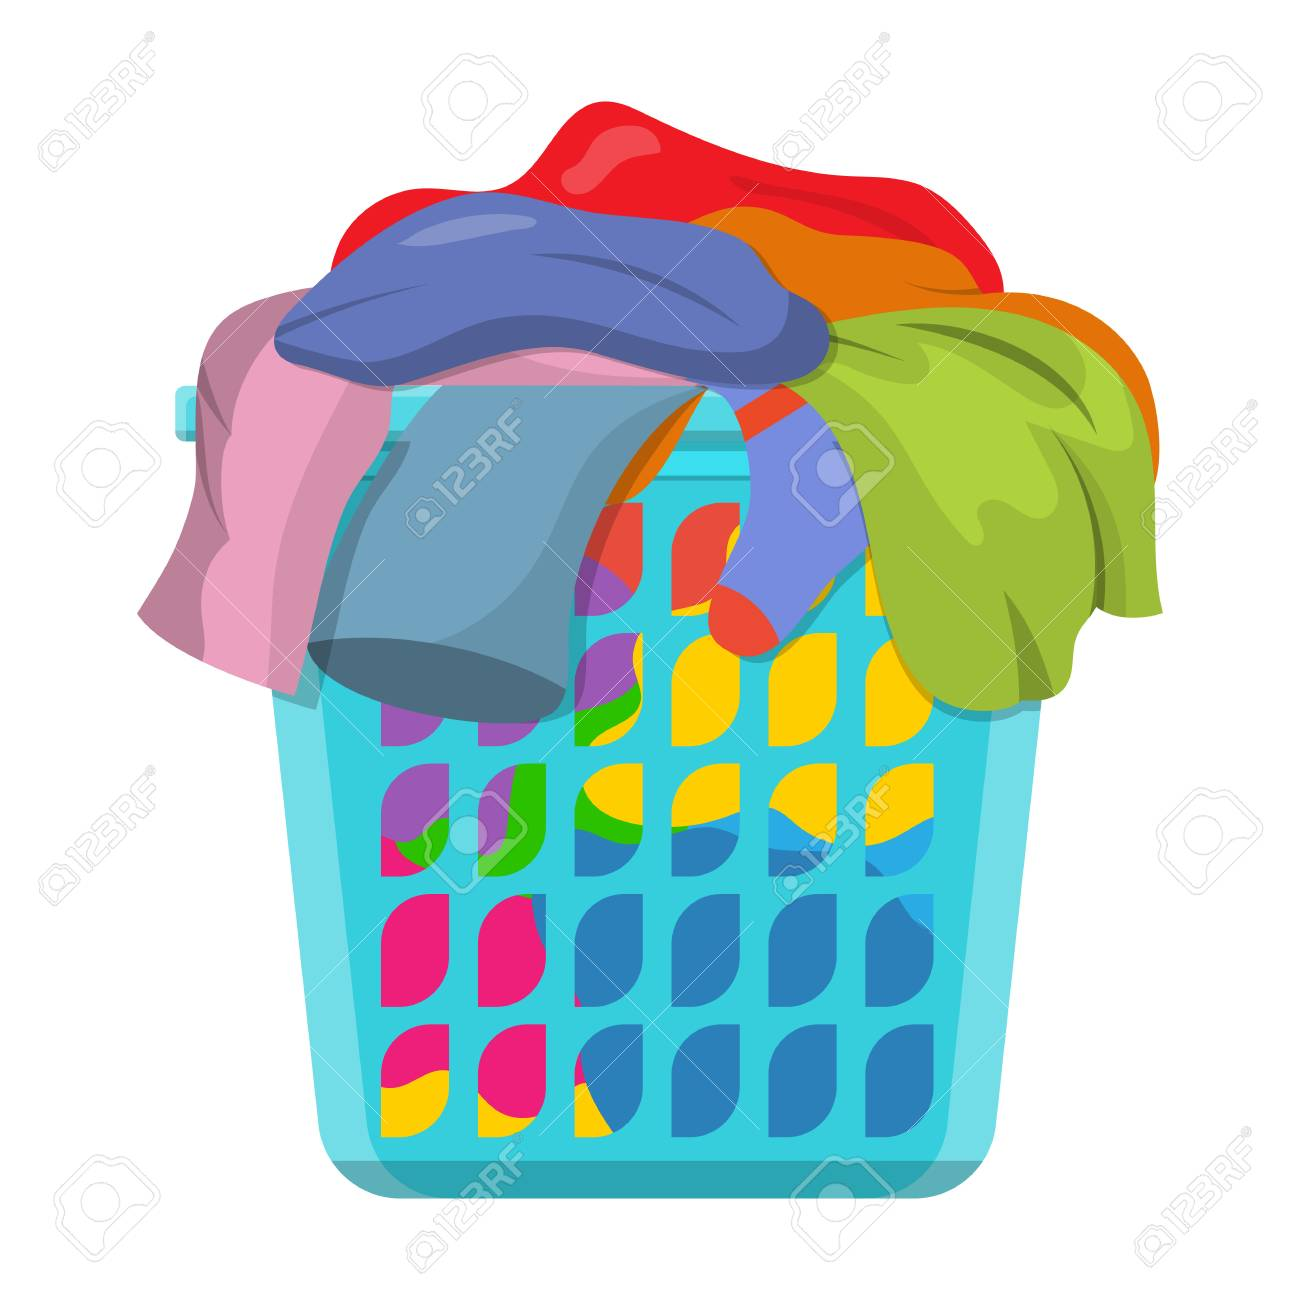 Dirty Laundry Baskets Basket With Linens Laundry Basket With Dirty Clothes Vector